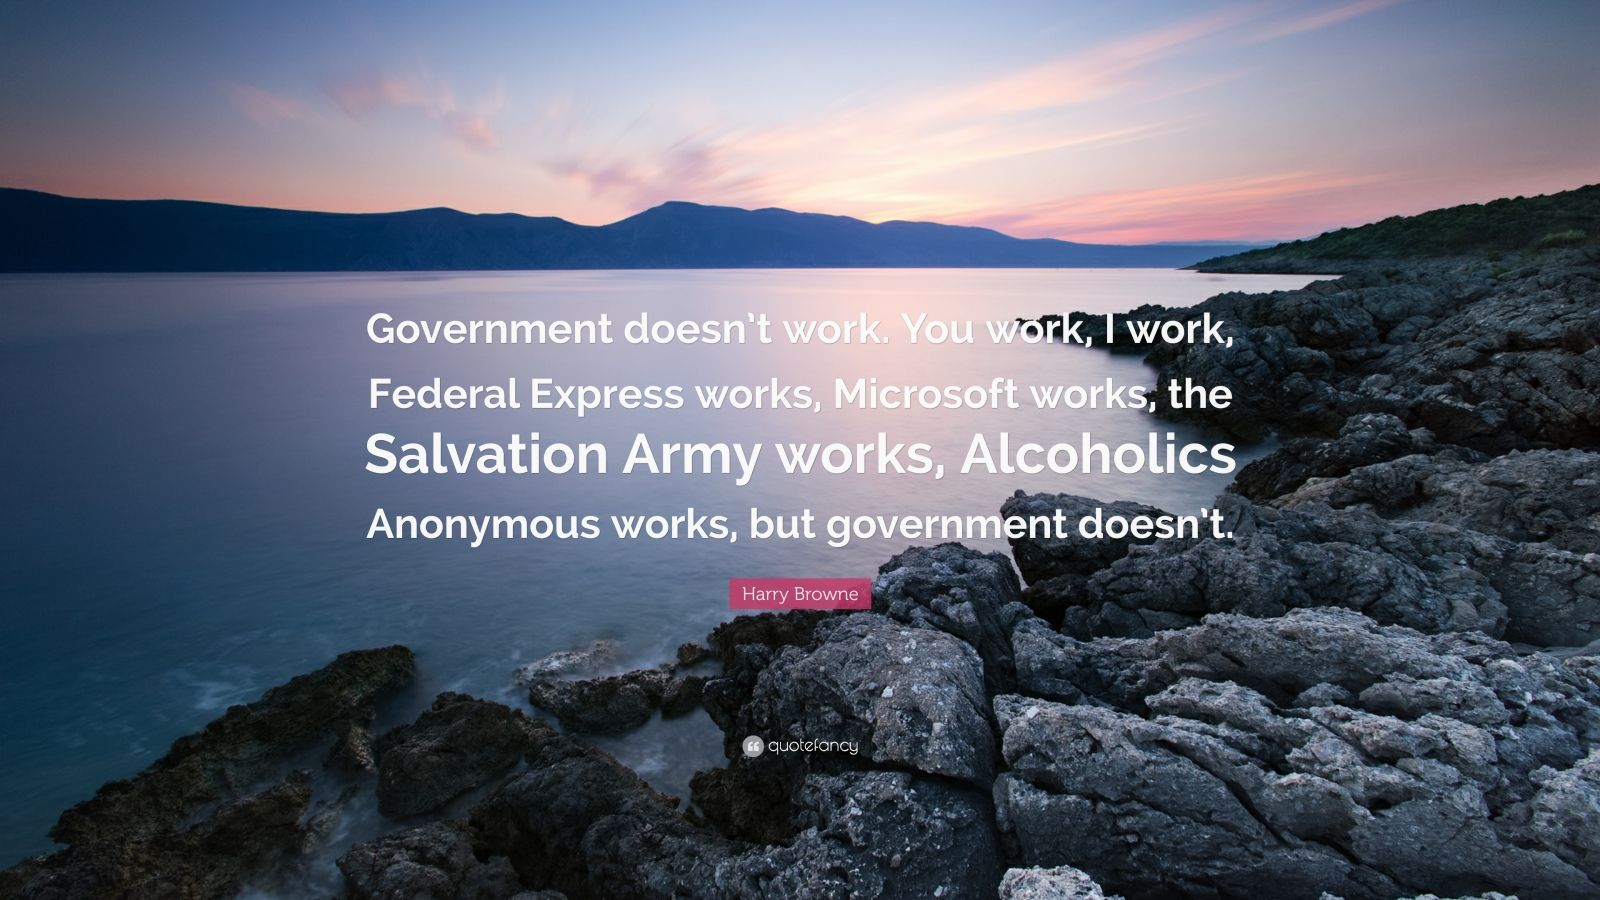 """Harry Browne Quote: """"Government doesn't work. You work, I work, Federal Express works, Microsoft works, the Salvation Army works, Alcoholics Anonymous works, but government doesn't."""""""